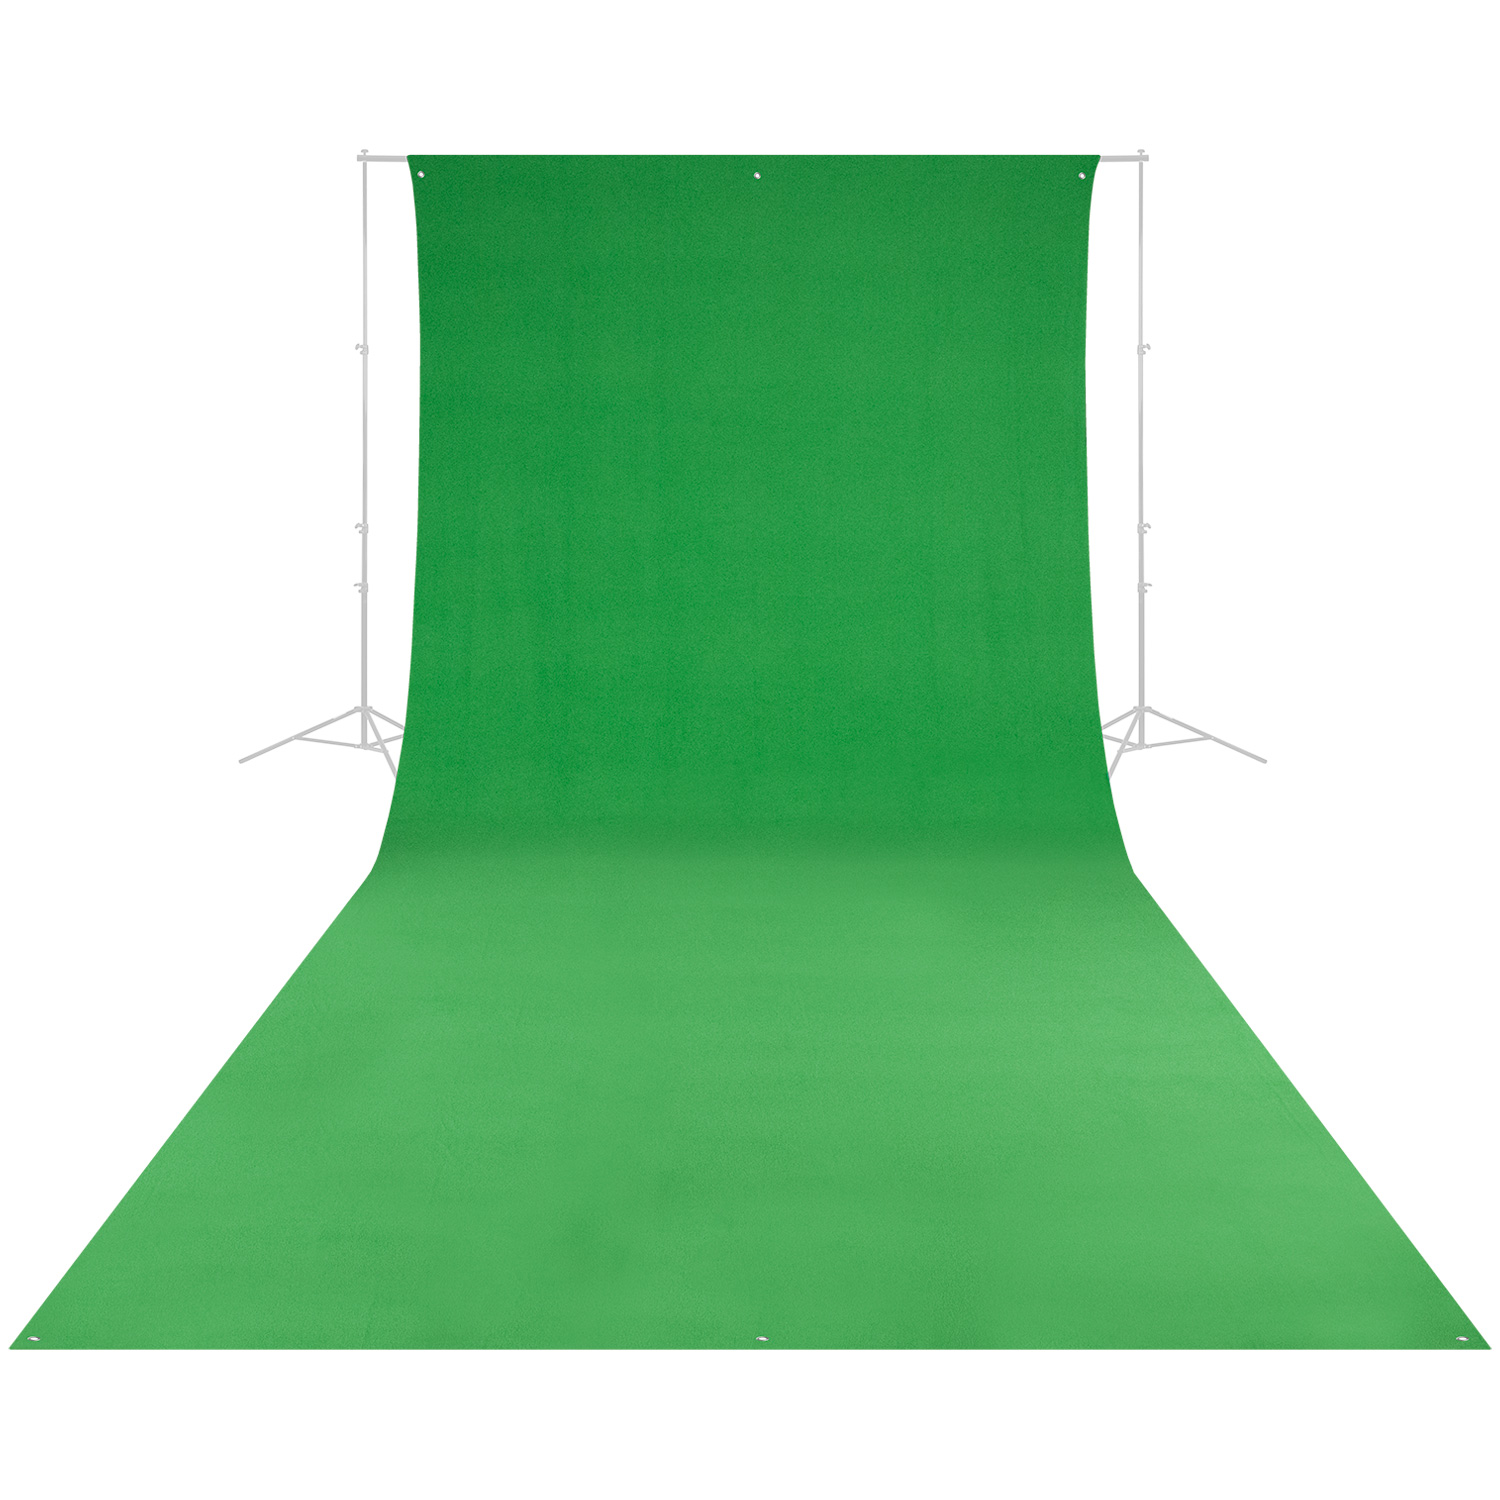 Wrinkle-Resistant Backdrop - Chroma-Key Green (9' x 20')